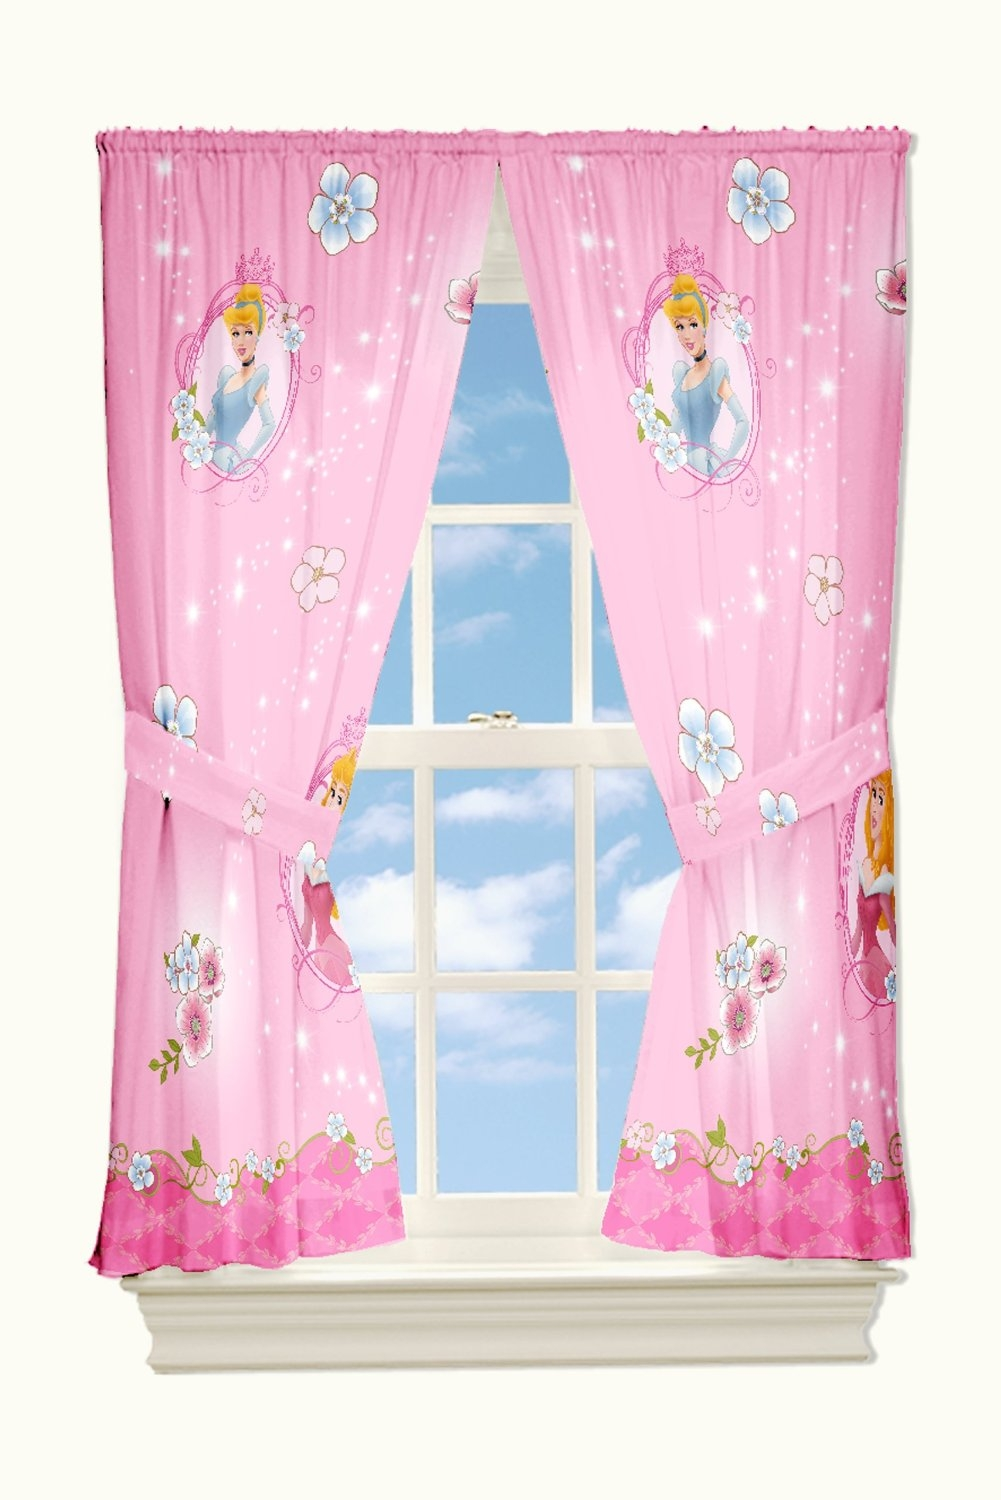 Curtains Curtains For Girls Bedroom Designs Girl Windows Curtains With Regard To Bedroom Curtains For Girls (View 9 of 25)